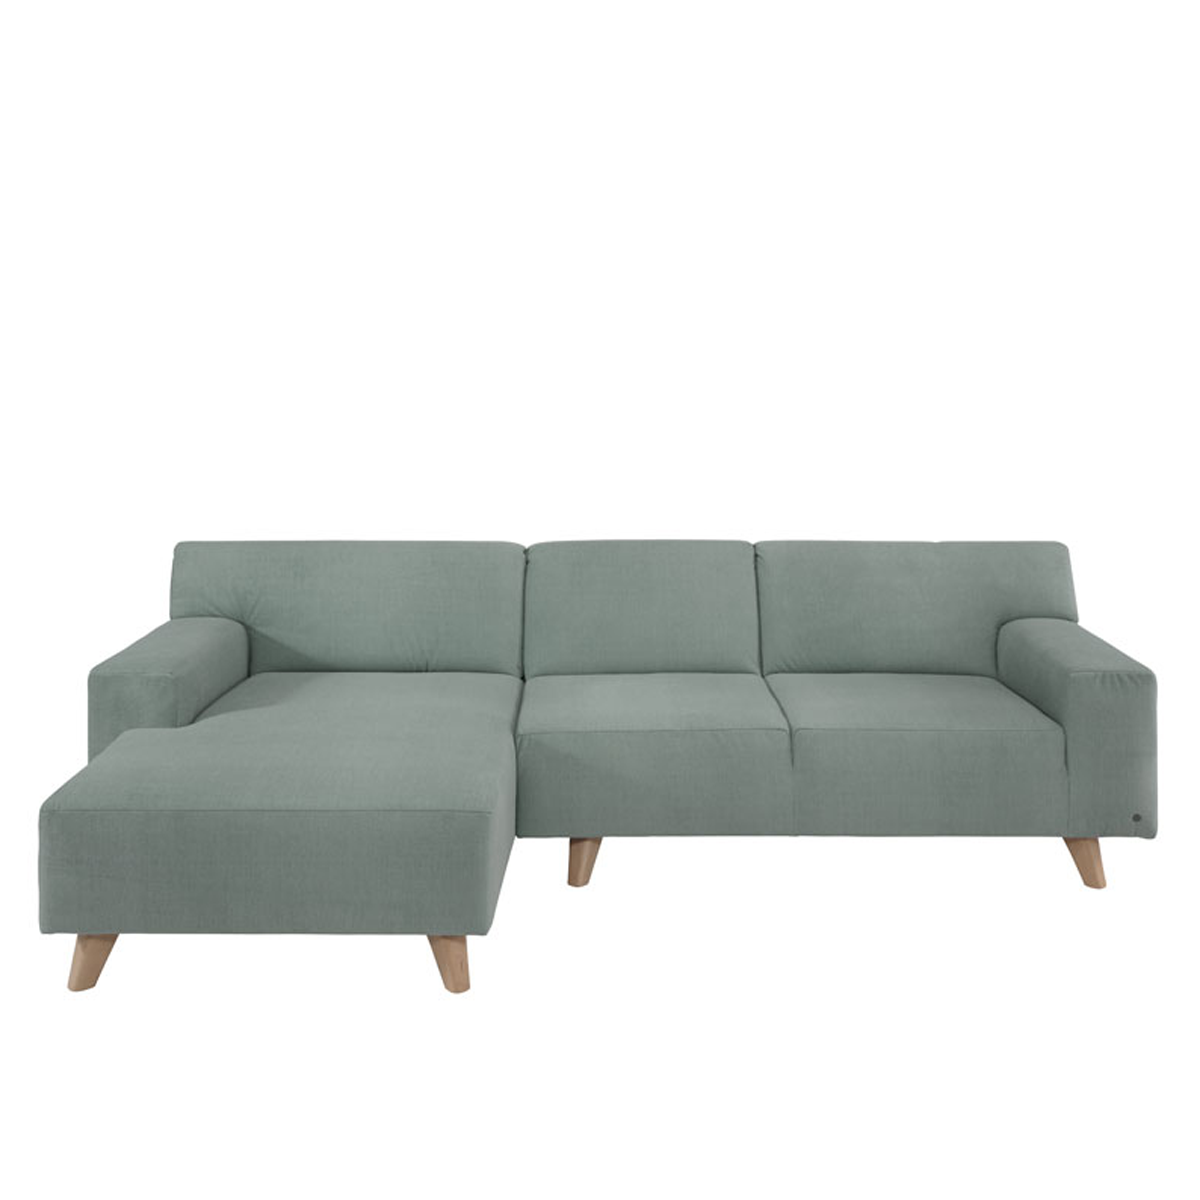 Full Size of Tom Tailor Sofa Heaven Style Otto Couch Elements Chic Nordic Big Cube Pure Xl Casual West Coast Ecksofa Im Natrlichem Grnton Mit Holzfen Und Armlehnen Samt Sofa Sofa Tom Tailor